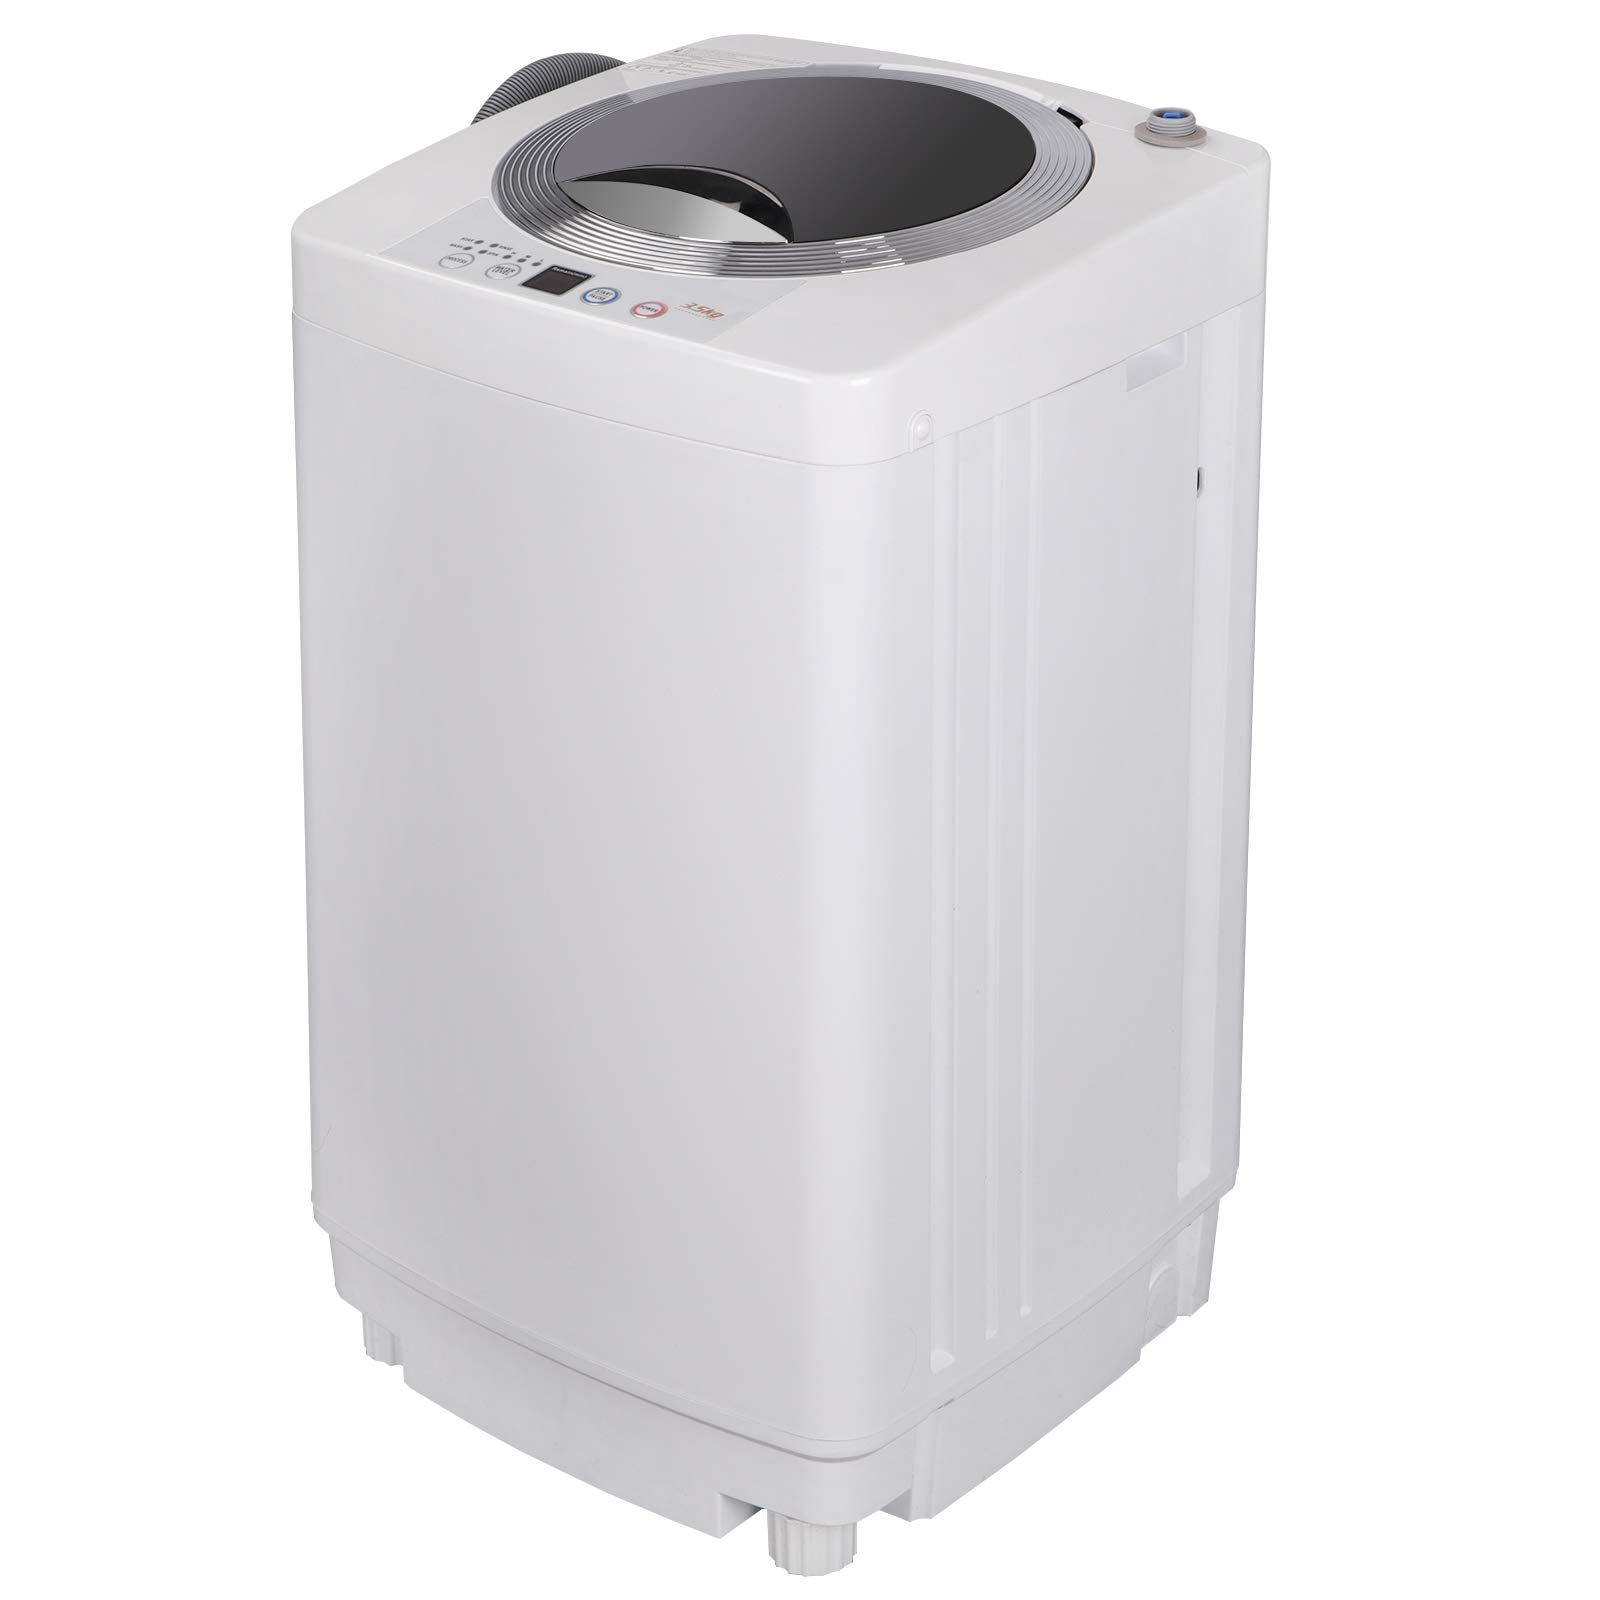 ZENY Portable Compact Full-Automatic Washing Machine 1.6 Cu.ft Laundry Washer Spin with Drain Pump and 6.56FT Drain Pipe,Compact and Perfect for Small spaces